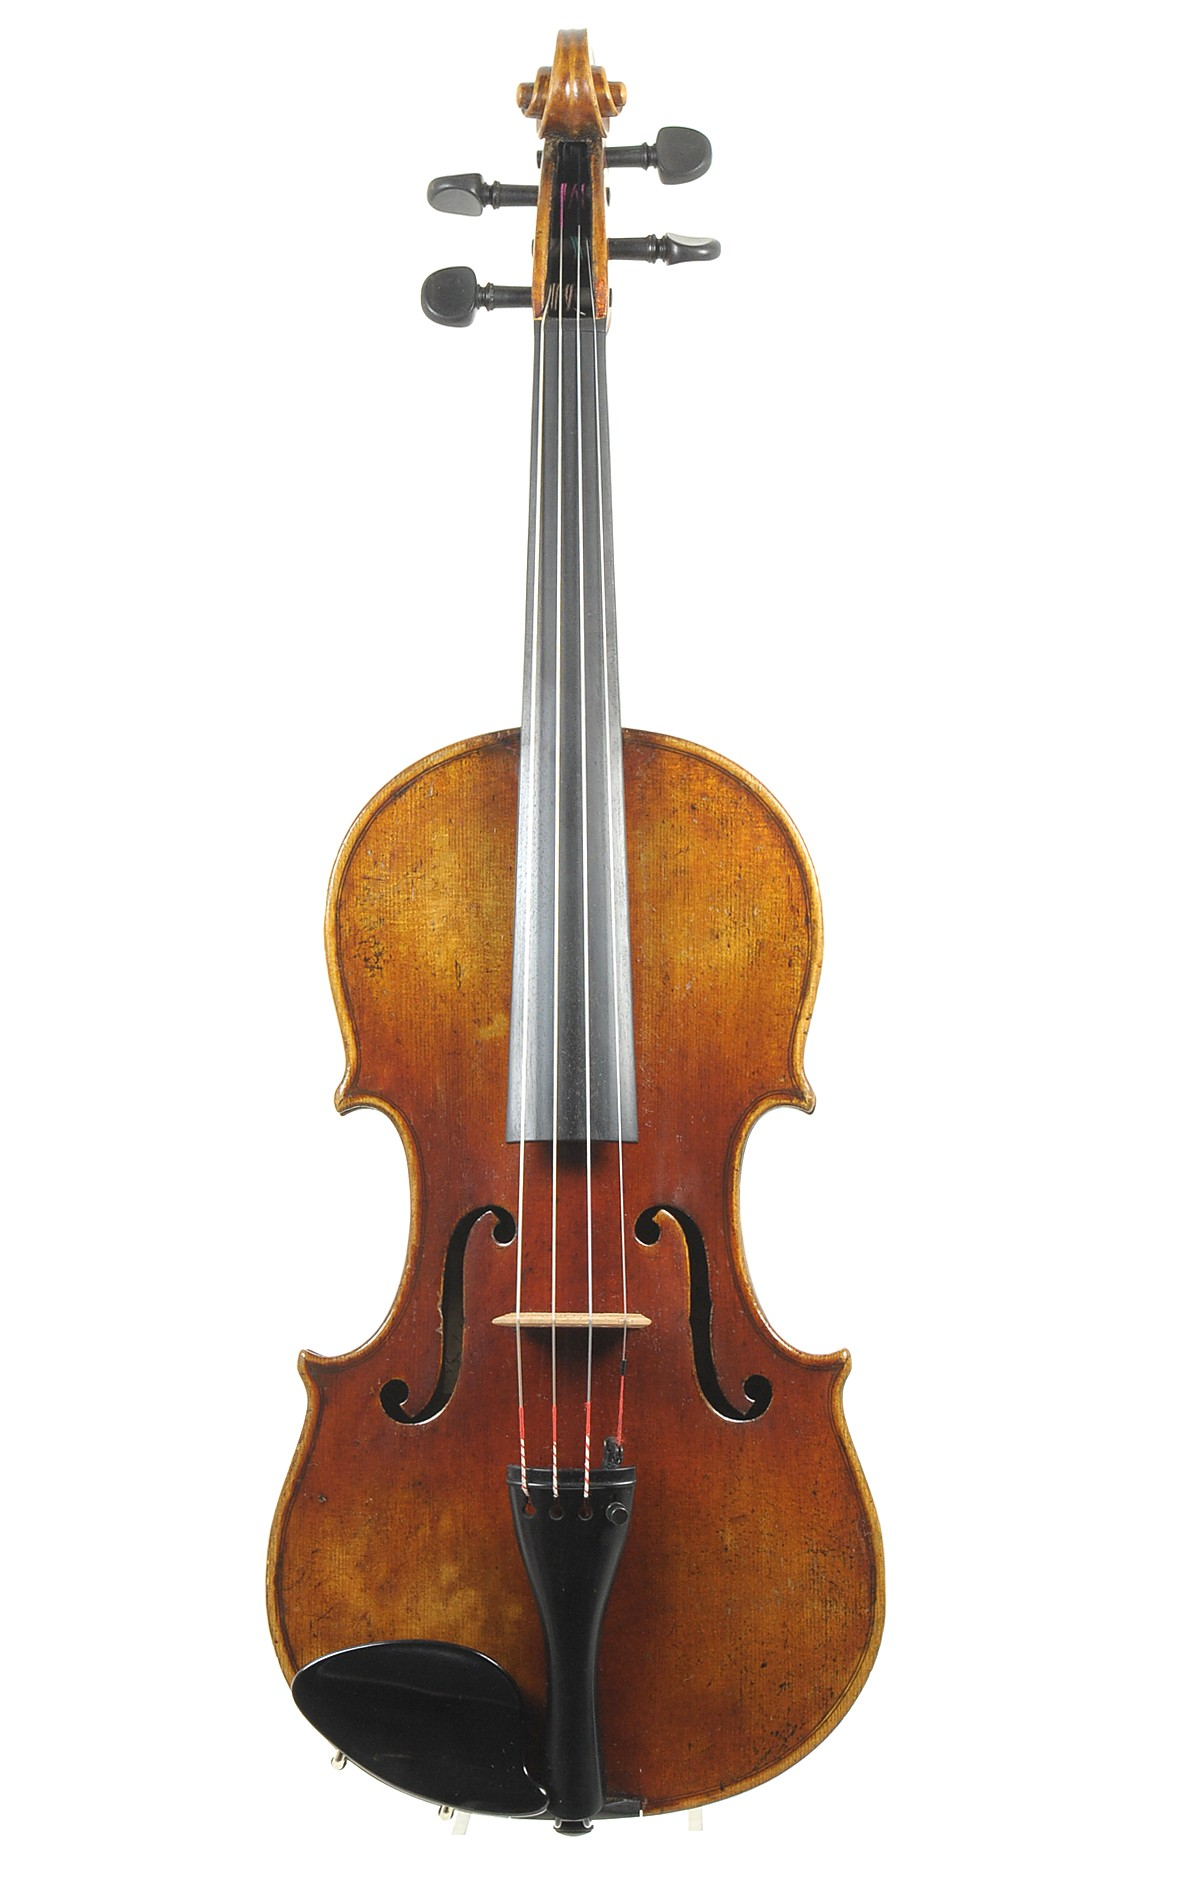 Handsome southern German violin by Carl Ruckmich